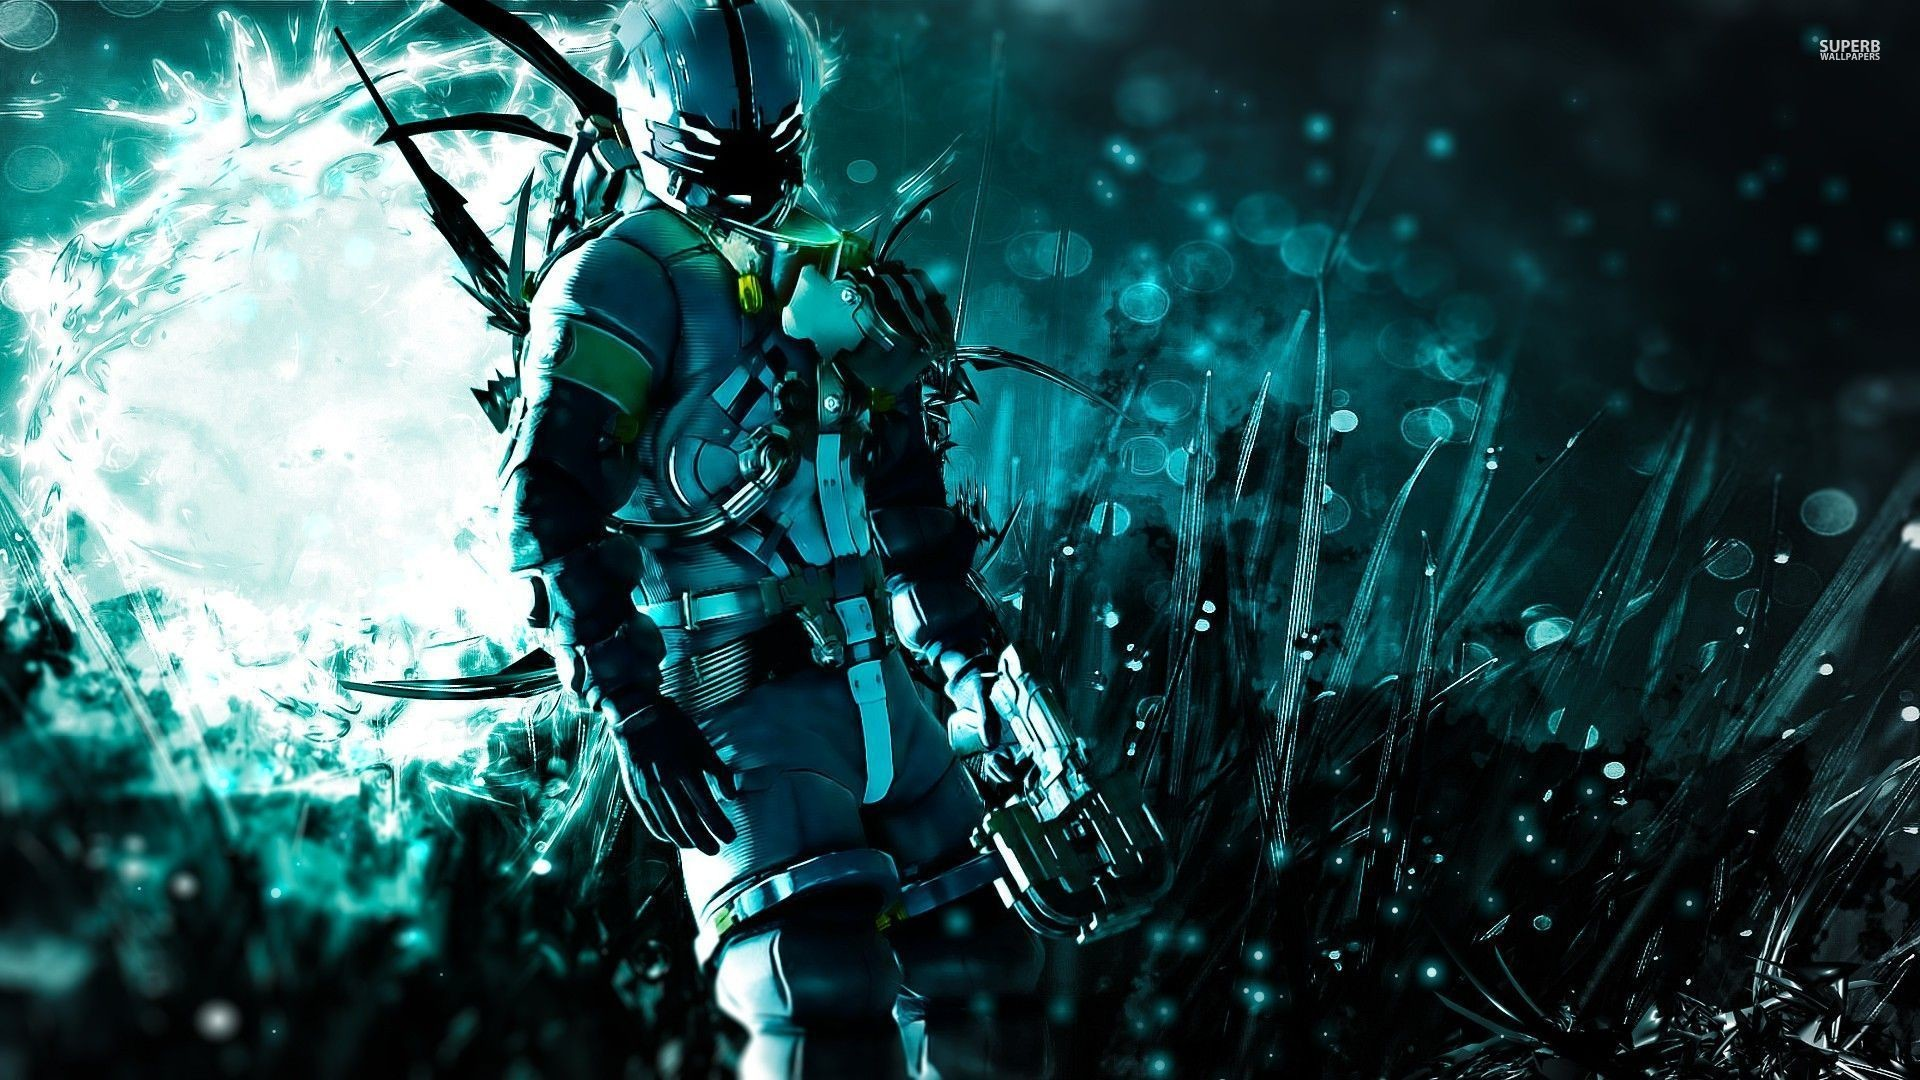 1920x1080 dead space 3 wallpaper Dead Space 3 Wallpaper - Game Wallpapers - #31660  Chainimage